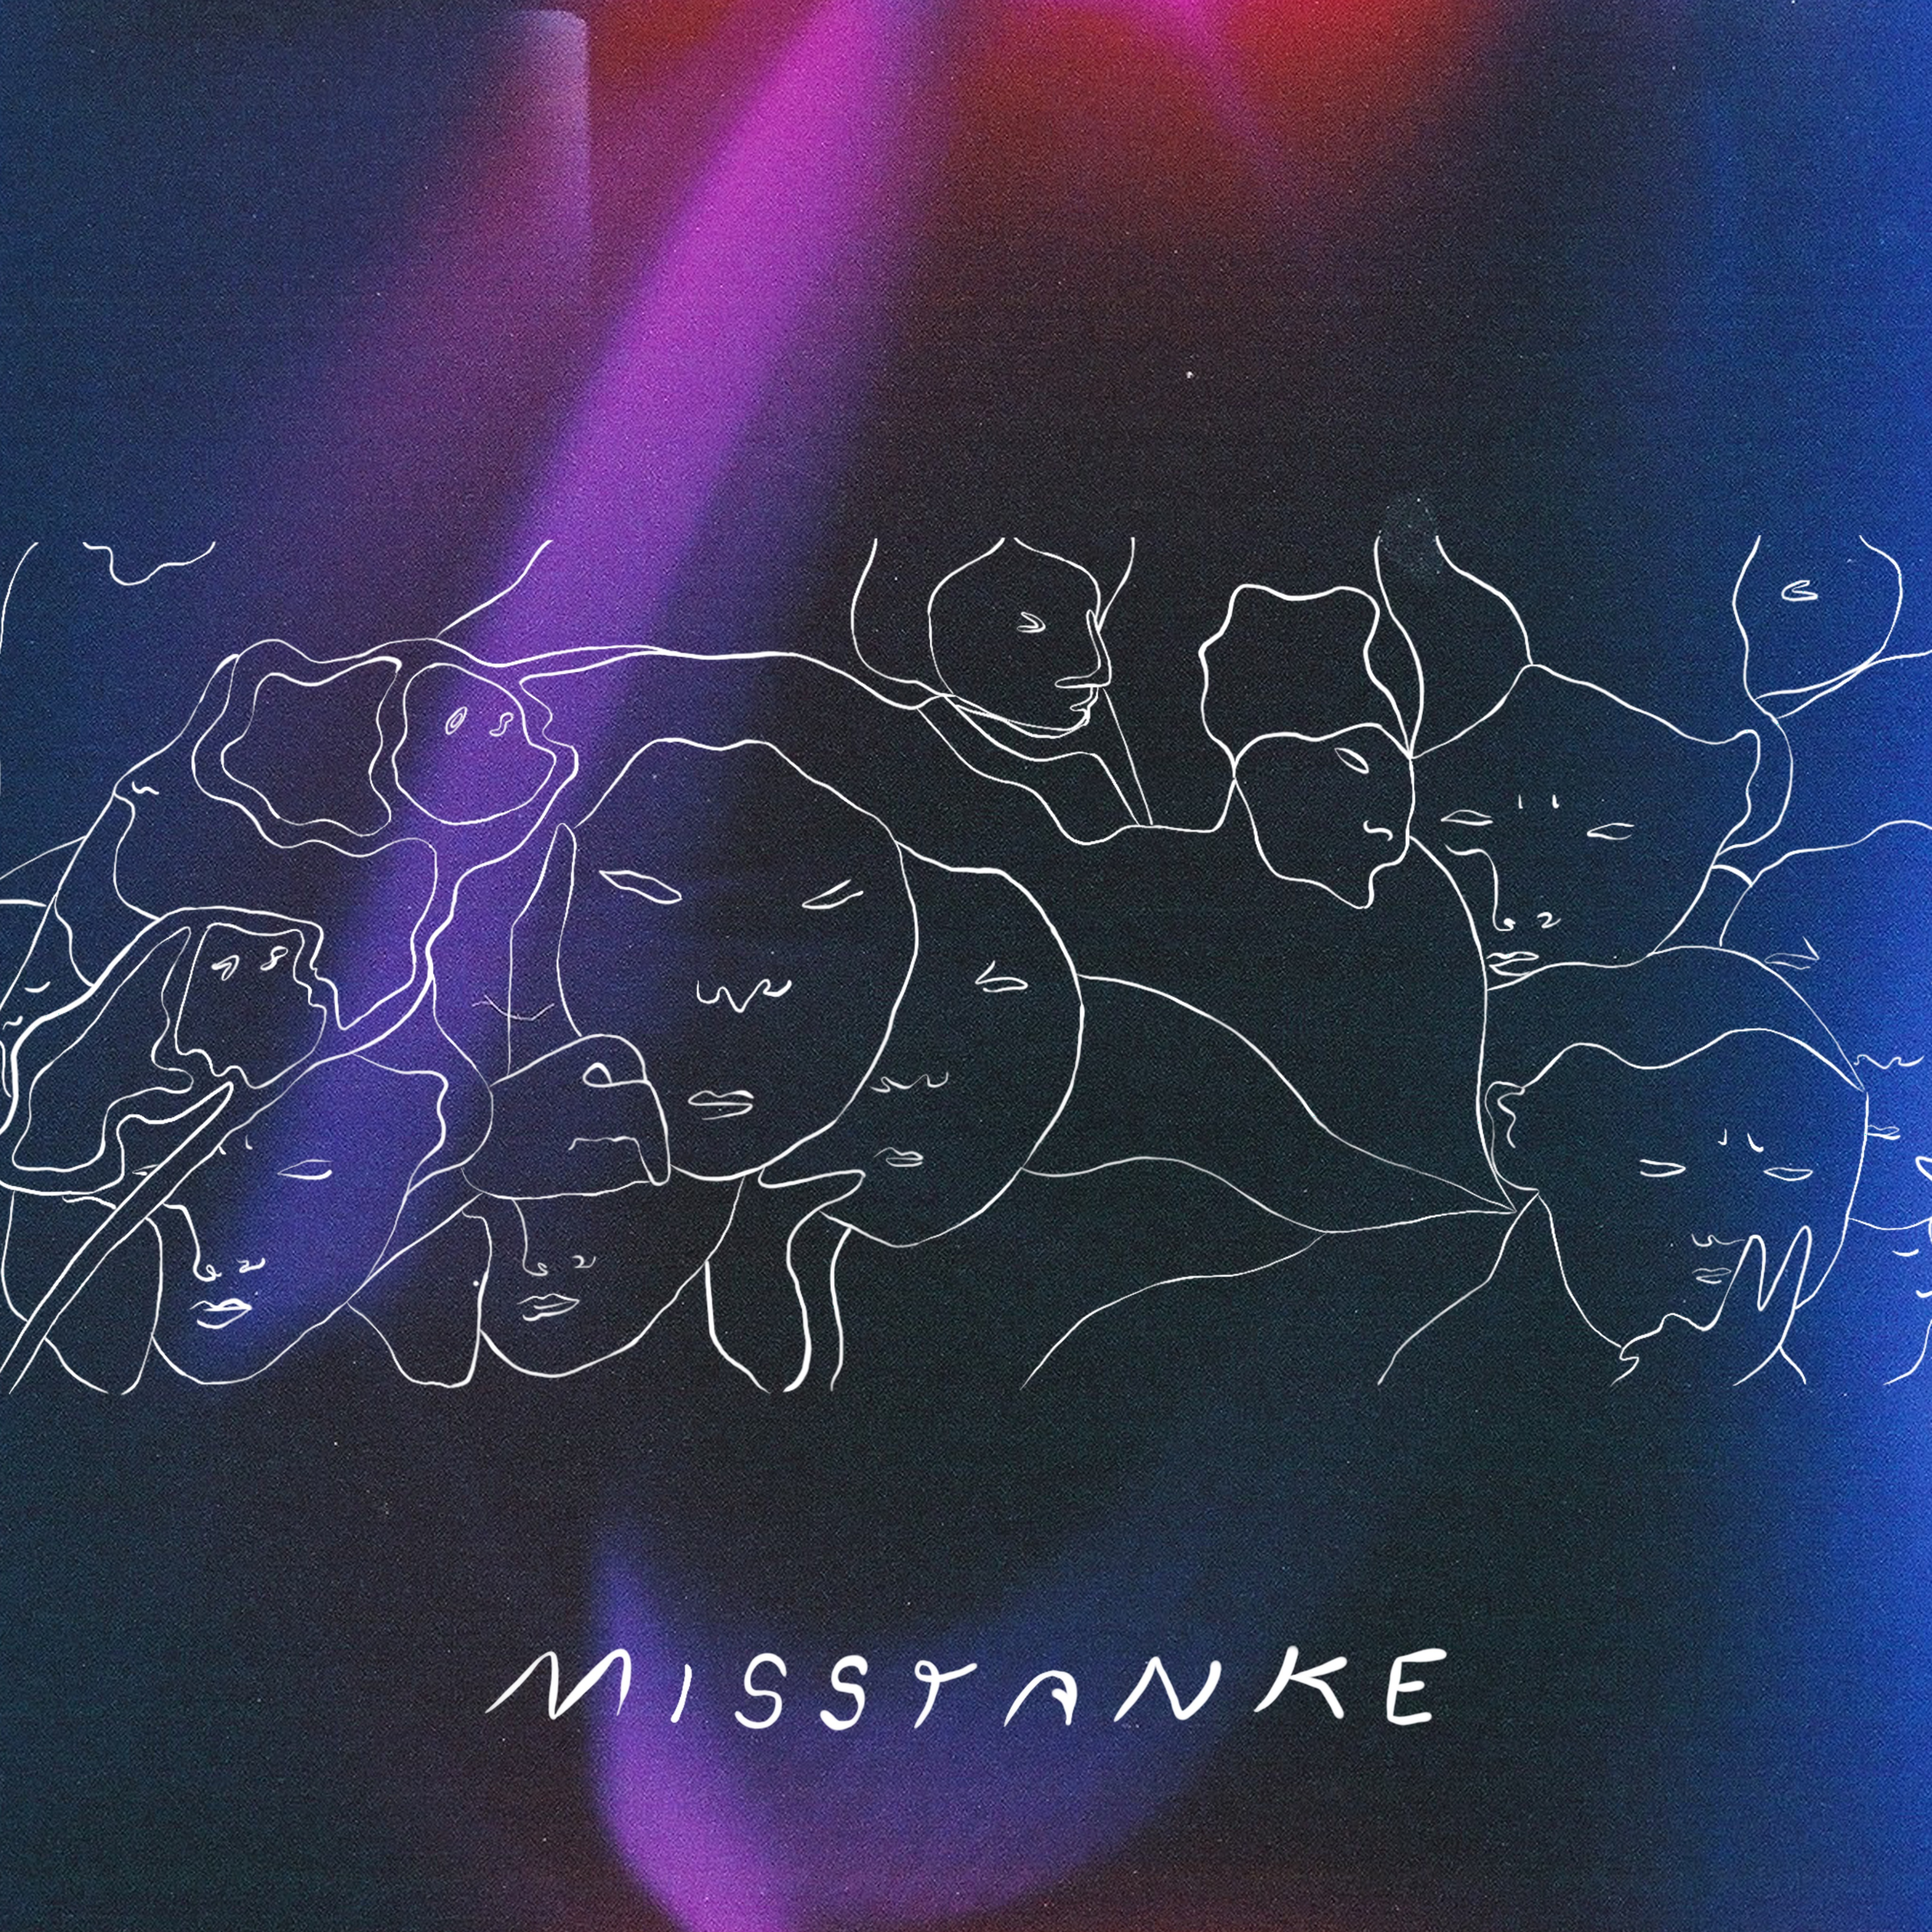 Judith Stocks - Misstanke (Download)